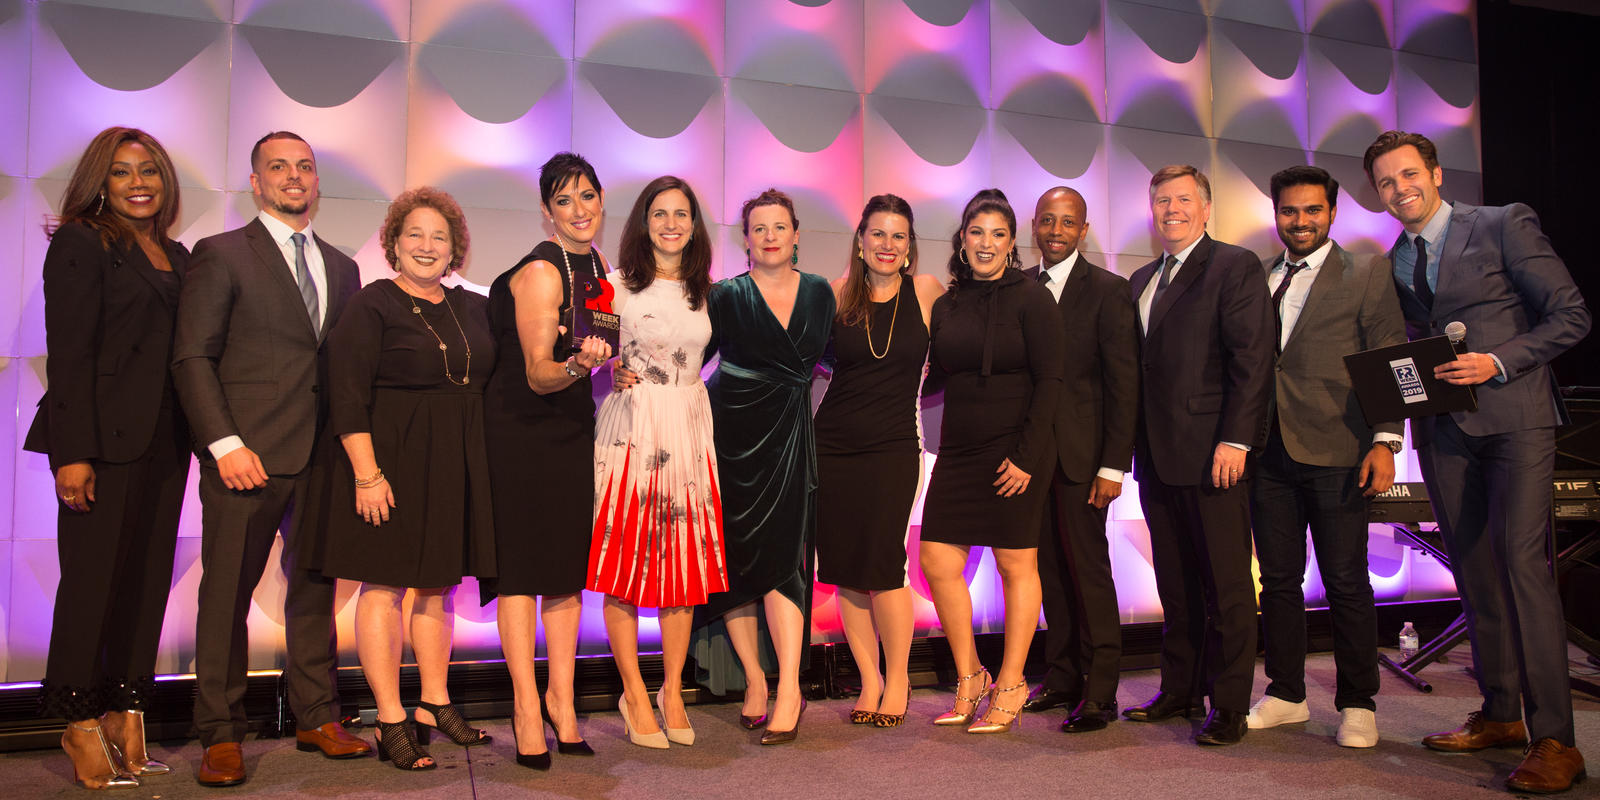 Zeno Group wins Agency of the Year and Midsize Agency of the Year at the PRWeek US Awards